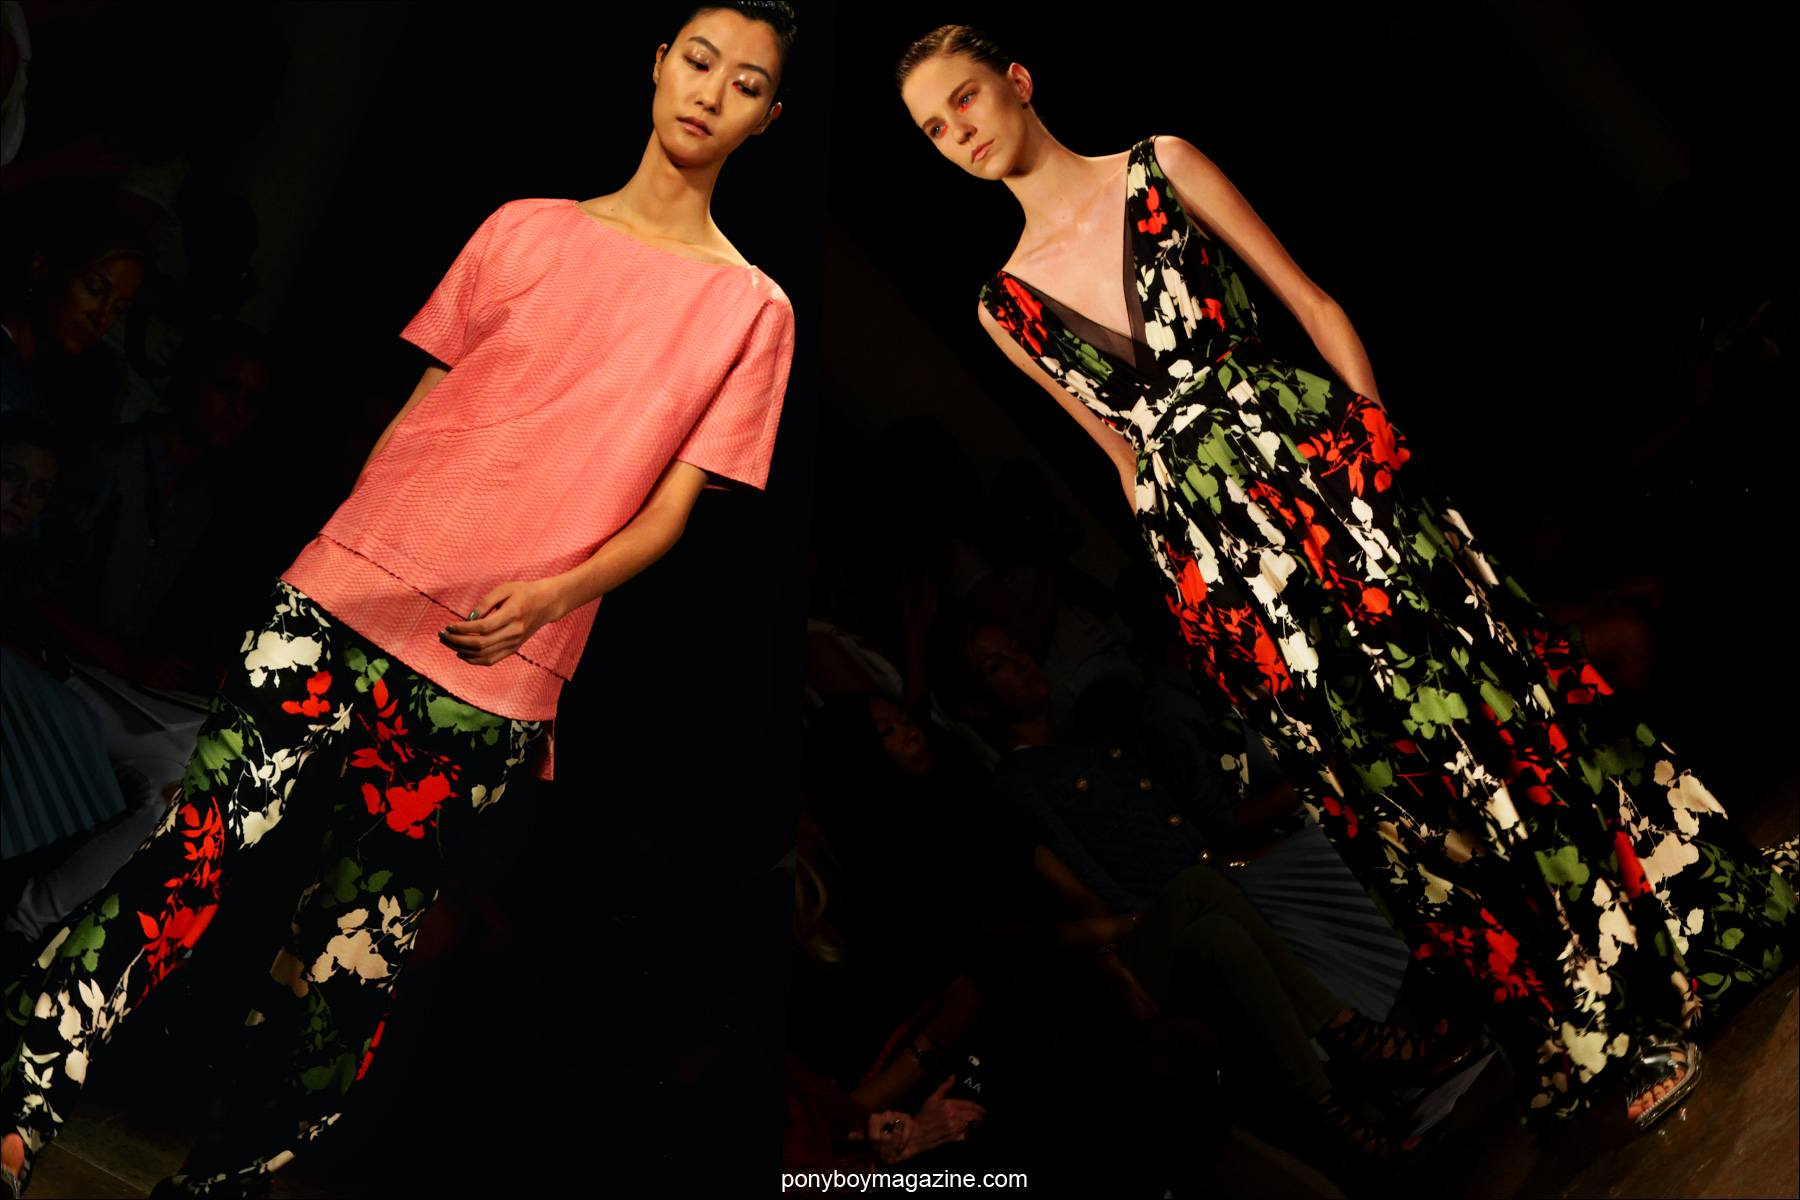 Floral fashions by designer Peter Som, S/S15 collection New York. Photos by Alexander Thompson for Ponyboy Magazine.